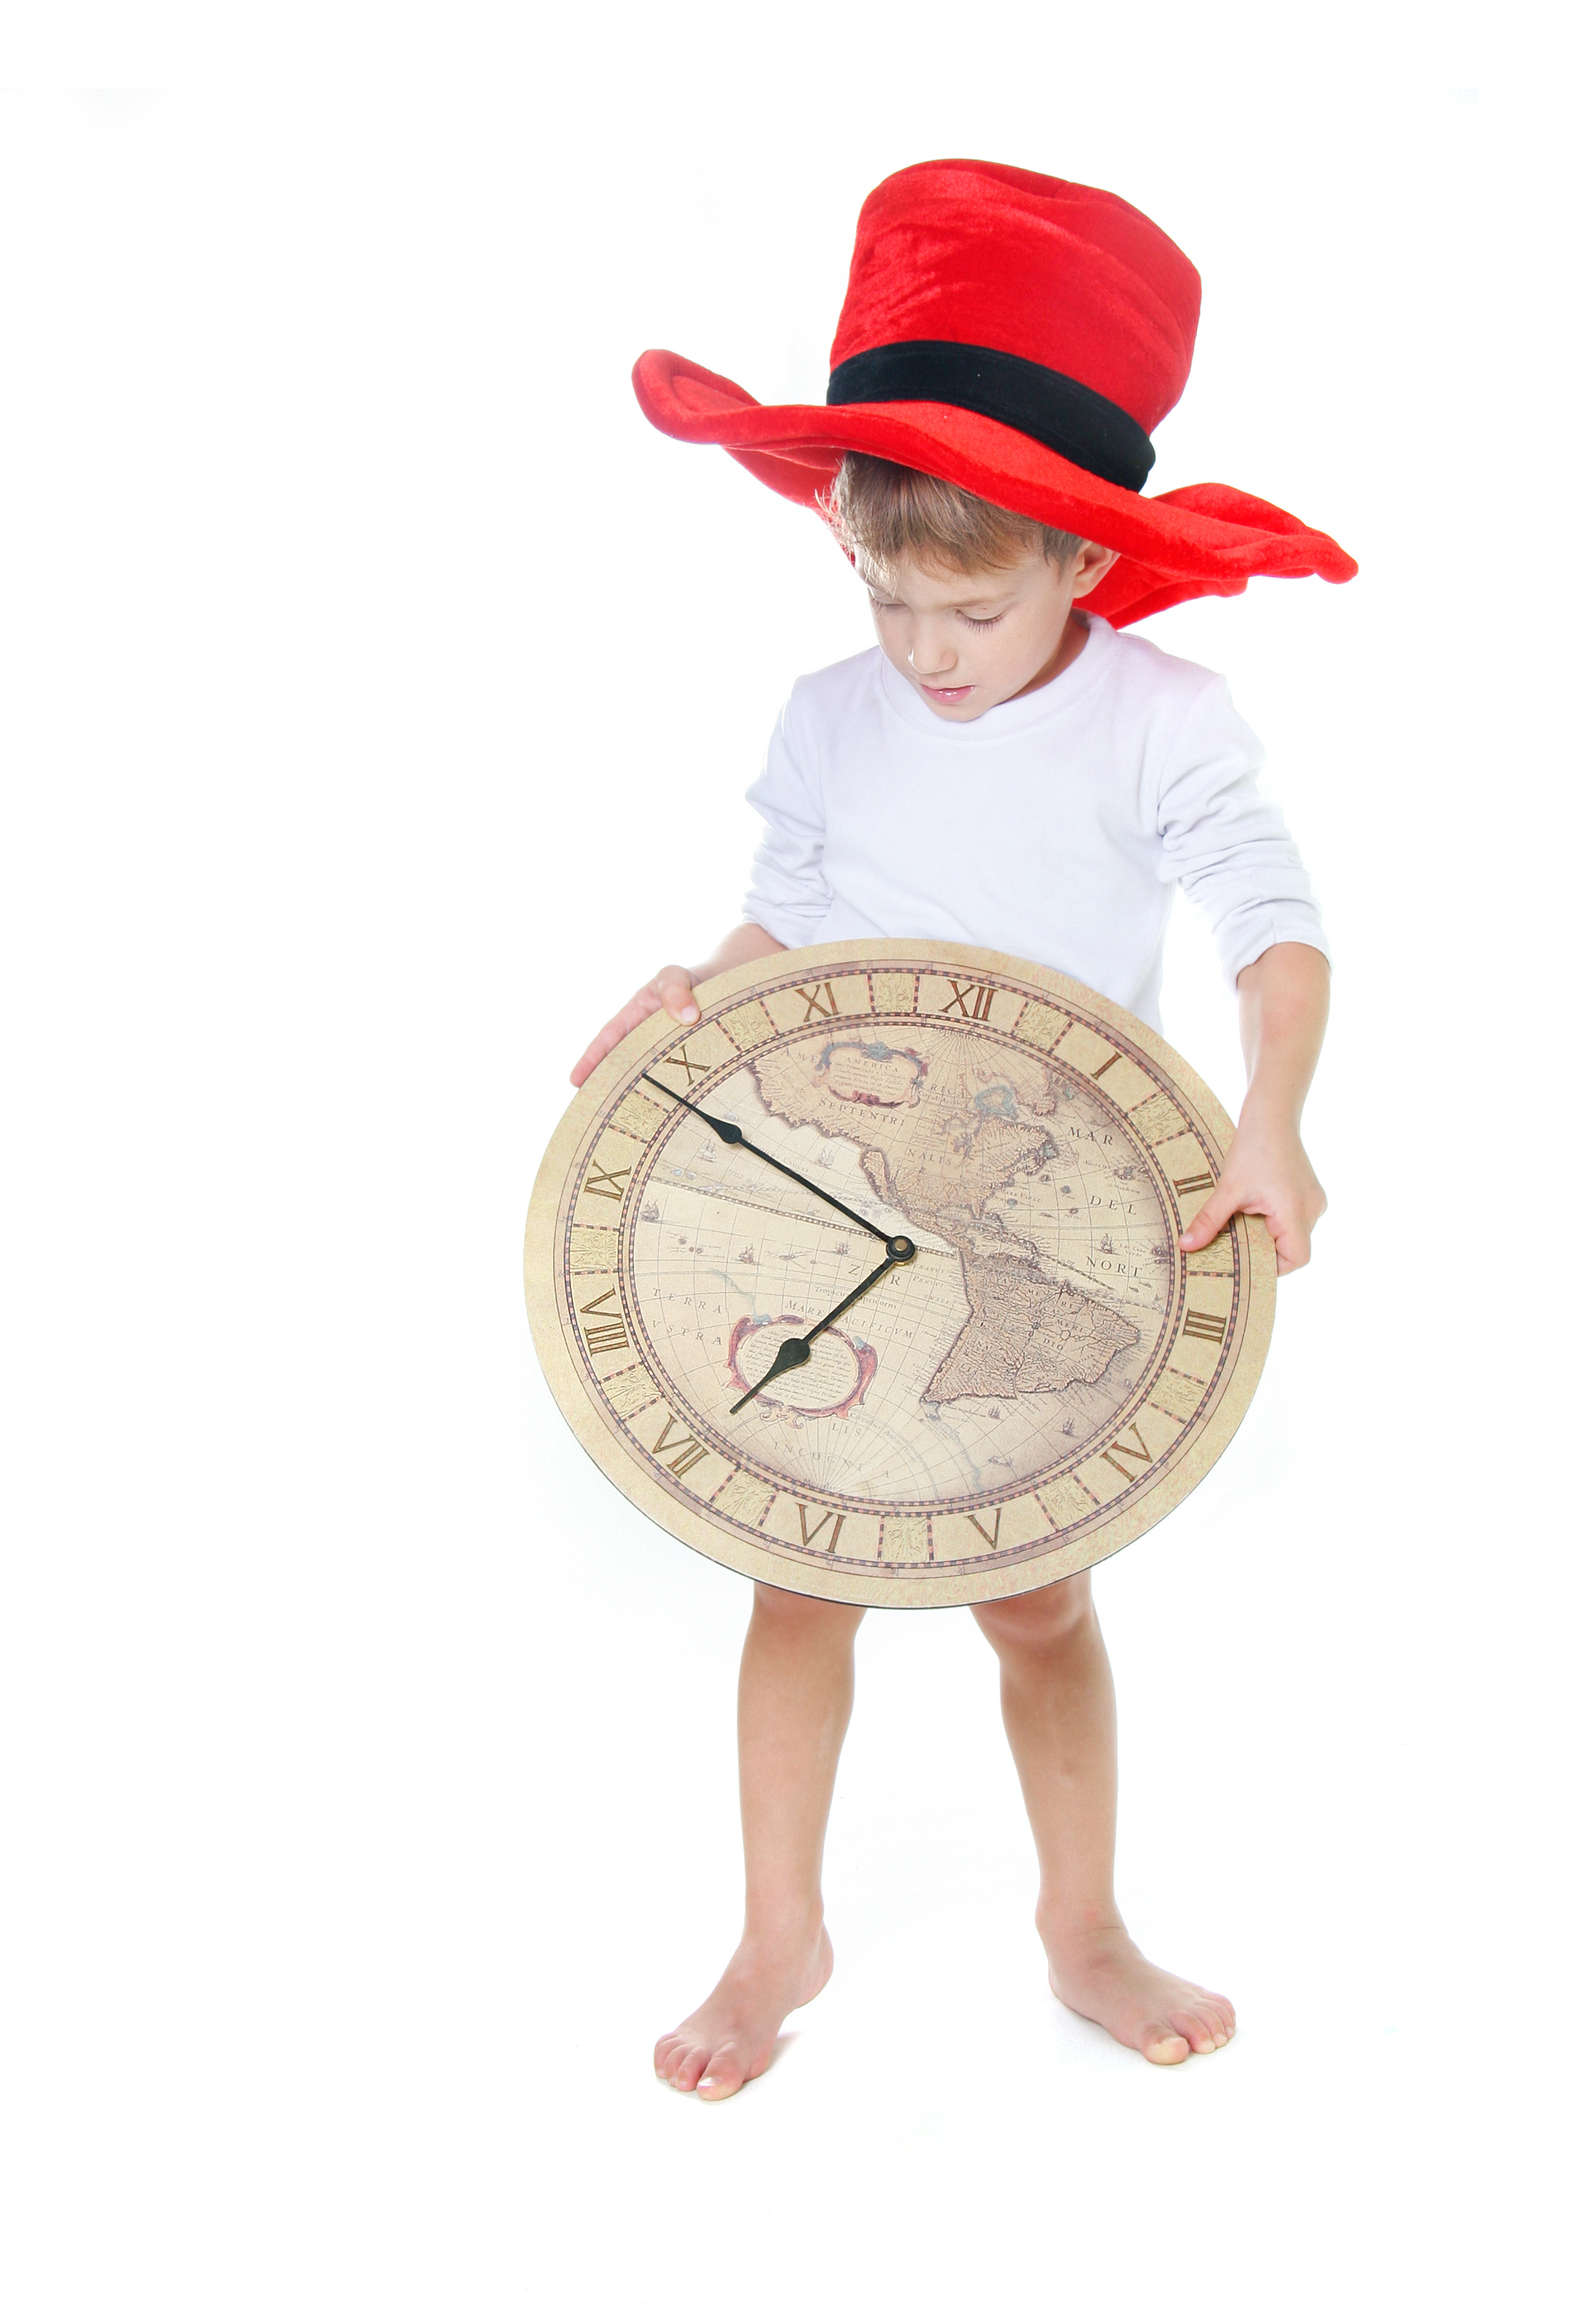 bigstock-cute-child-in-big-hat-with-clo-26142845.jpg